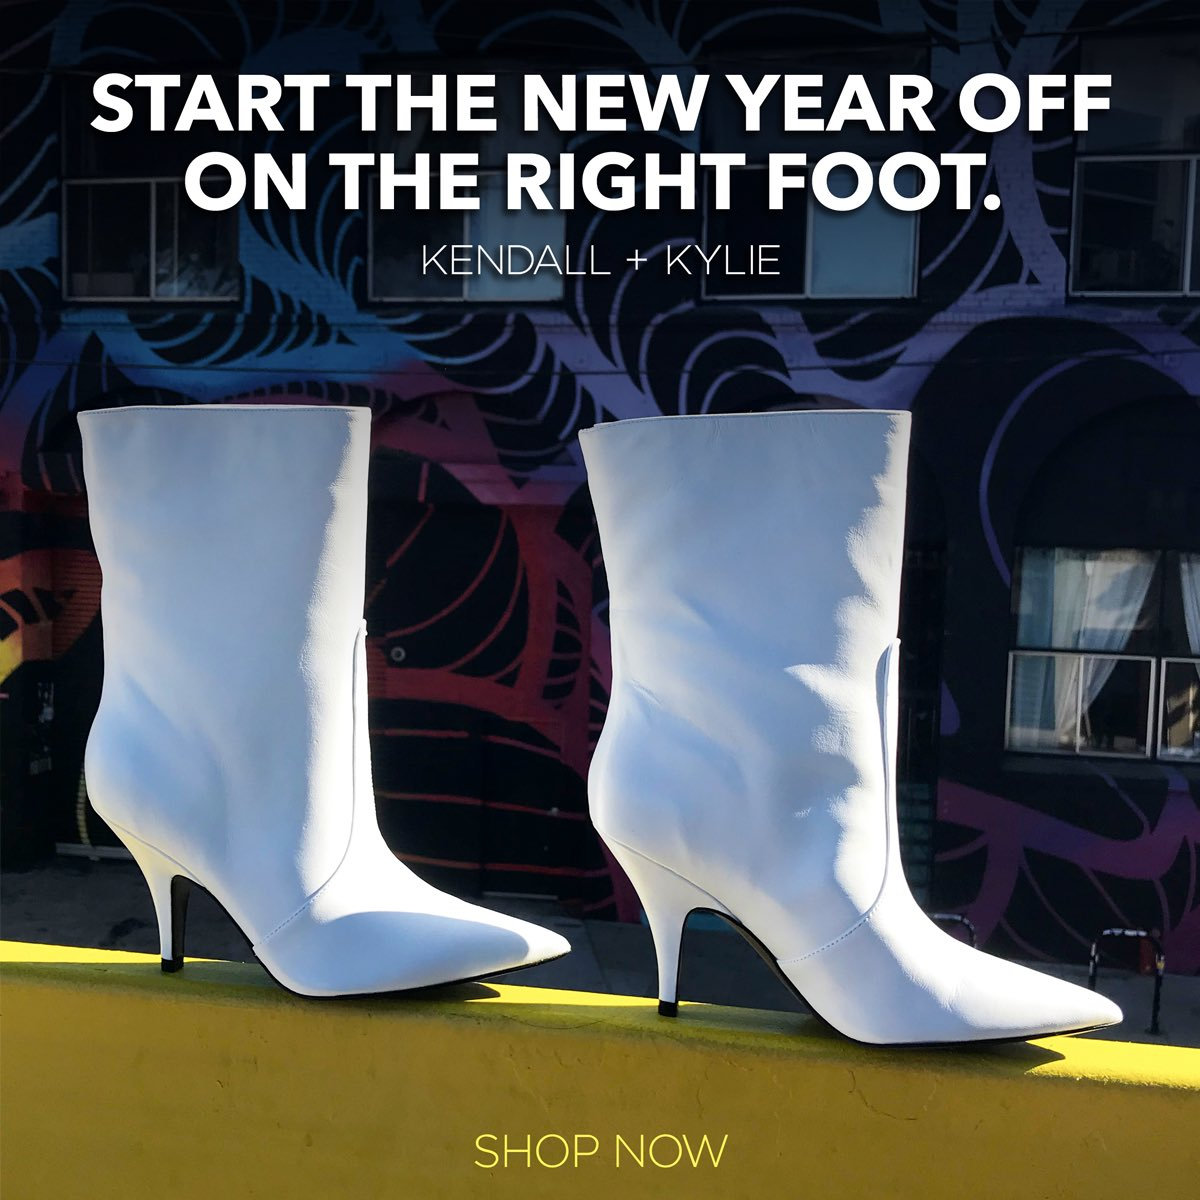 shop footwear from @kendallandkylie and start 2018 on the right foot! Visit https://t.co/3cyzlinqfC